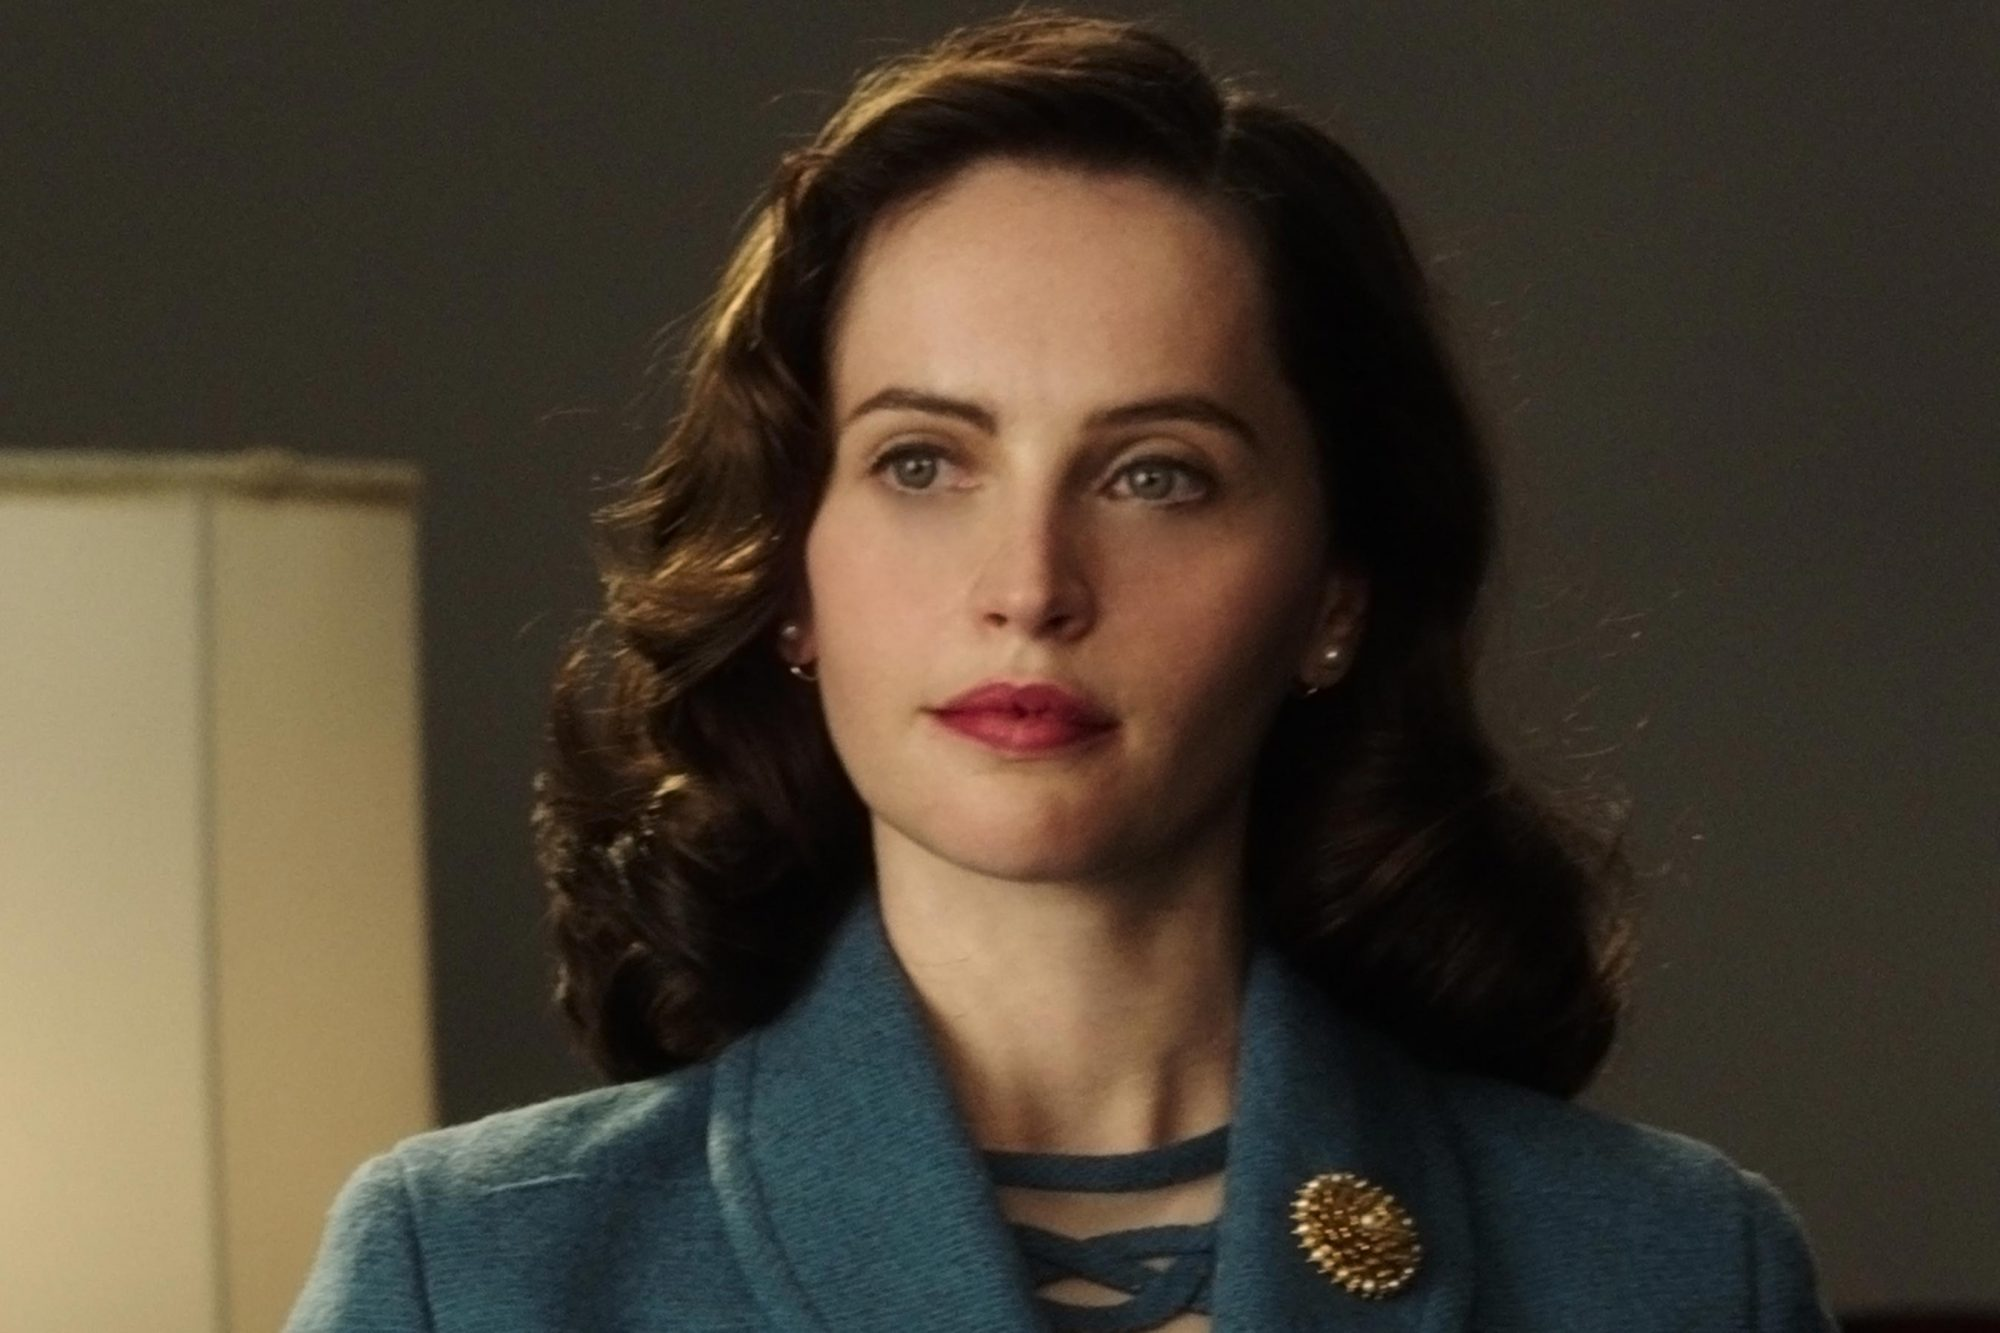 Felicity-Jones-as-Ruth-Bader-Ginsburg